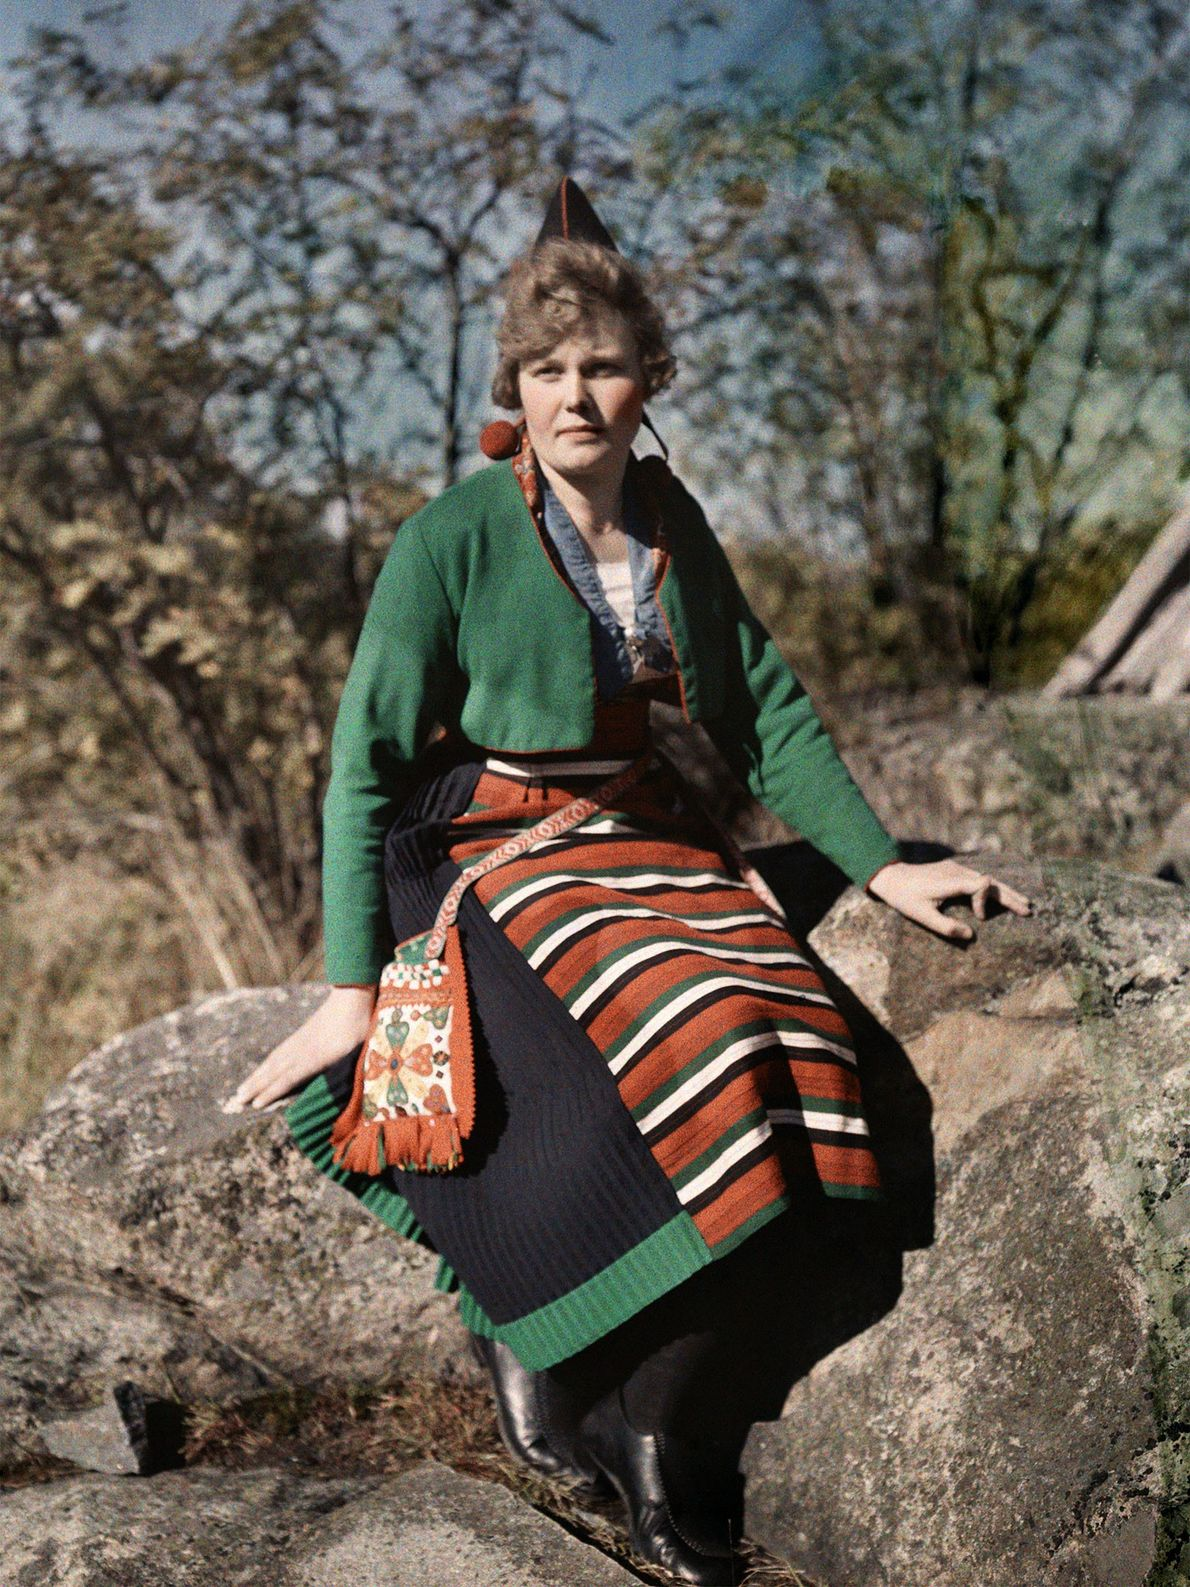 A woman from Rattvik, Sweden, poses on a boulder in the woods while wearing a pointed ...